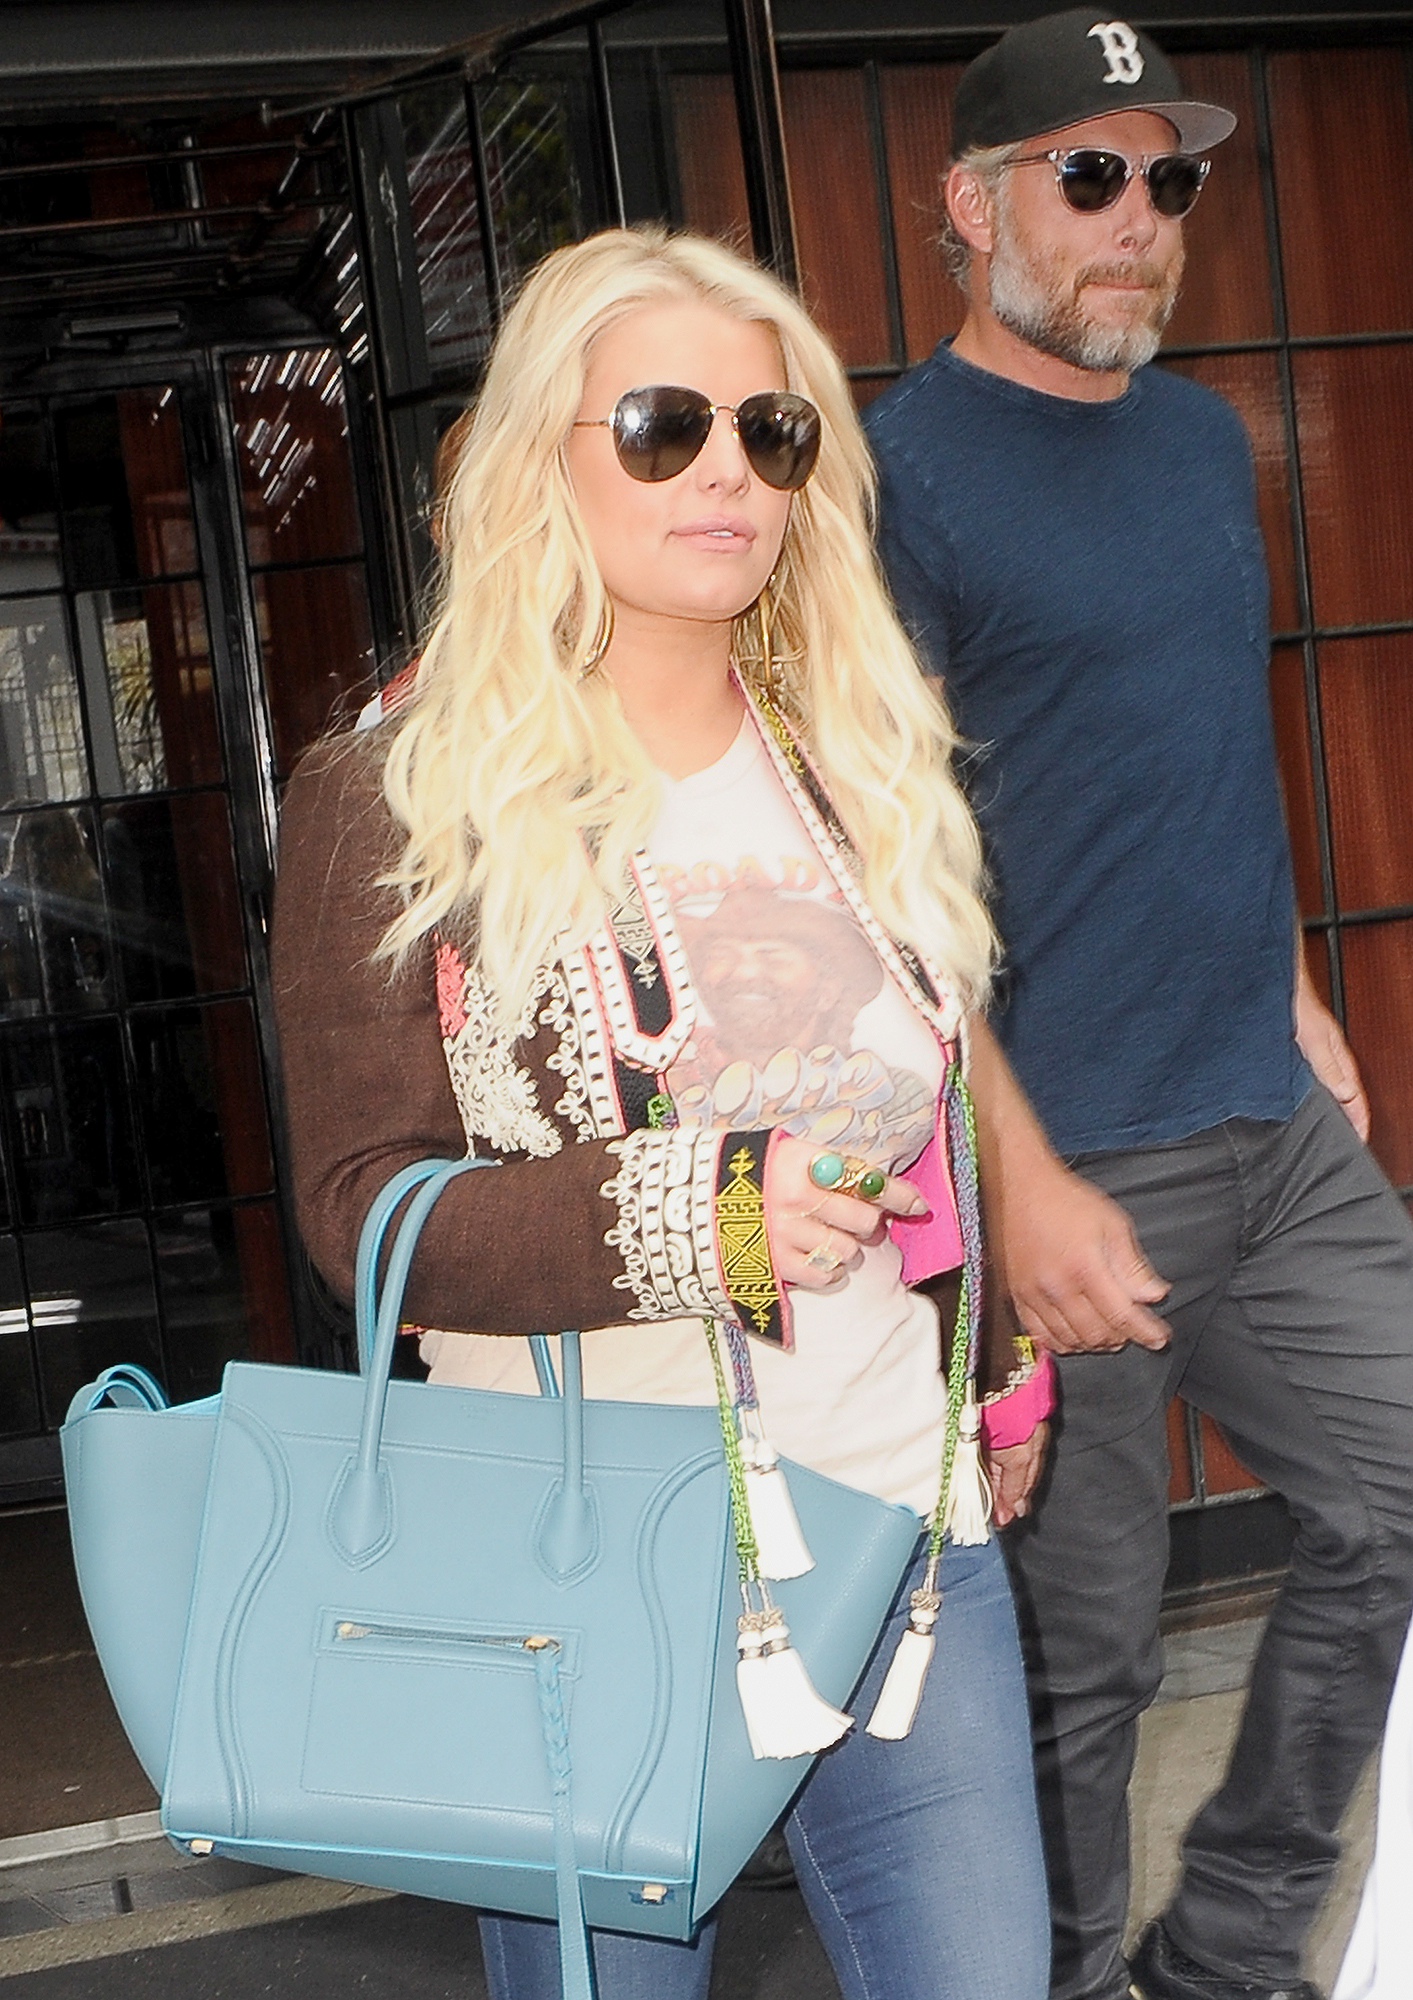 Jessica Simpson and husband Eric Johnson spotted leaving The Bowery Hotel